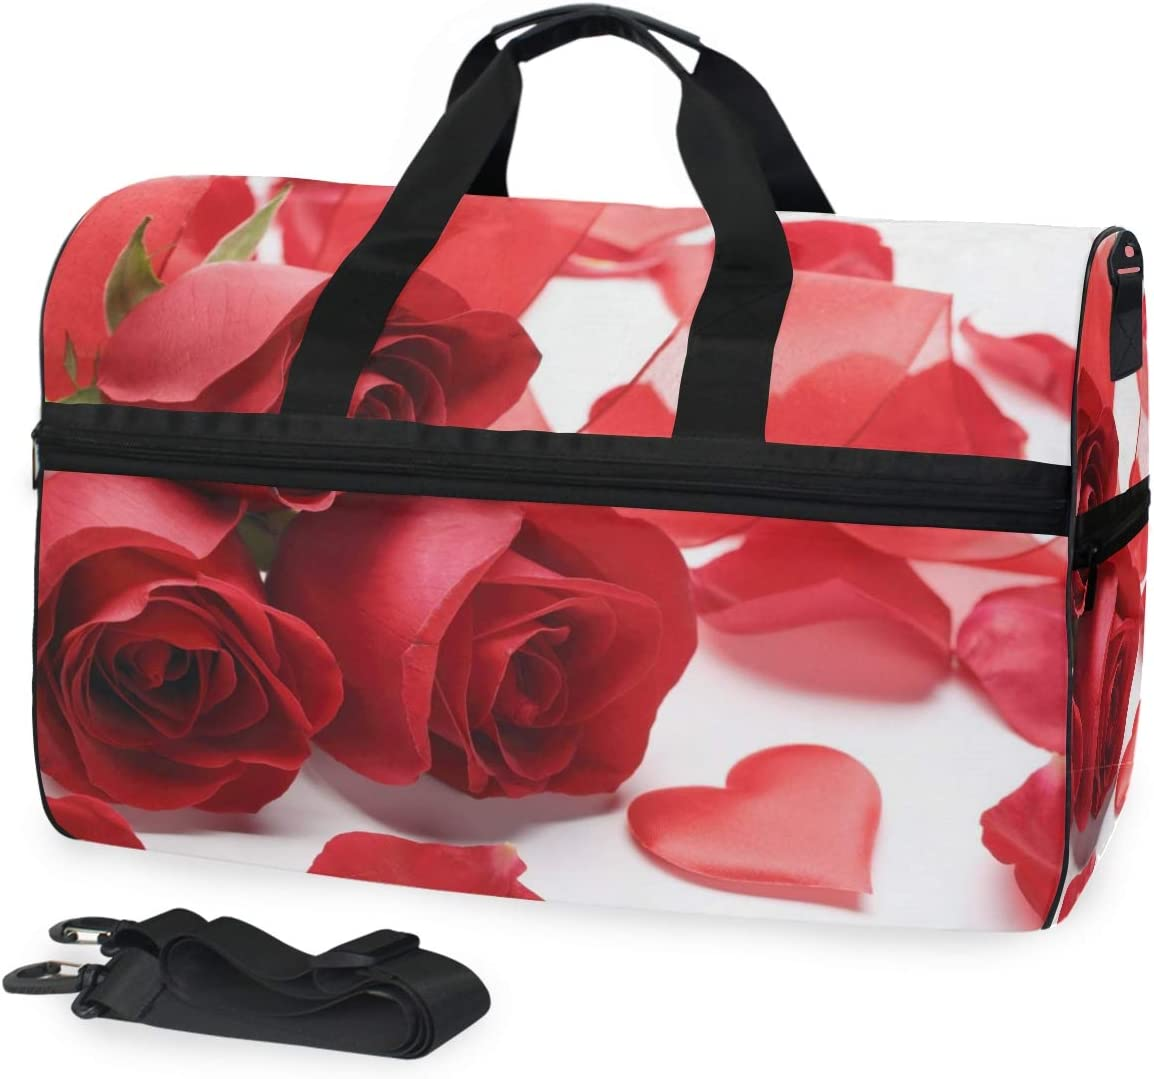 Travel Duffels Roses Heart Love Duffle Bag Luggage Sports Gym for Women /& Men